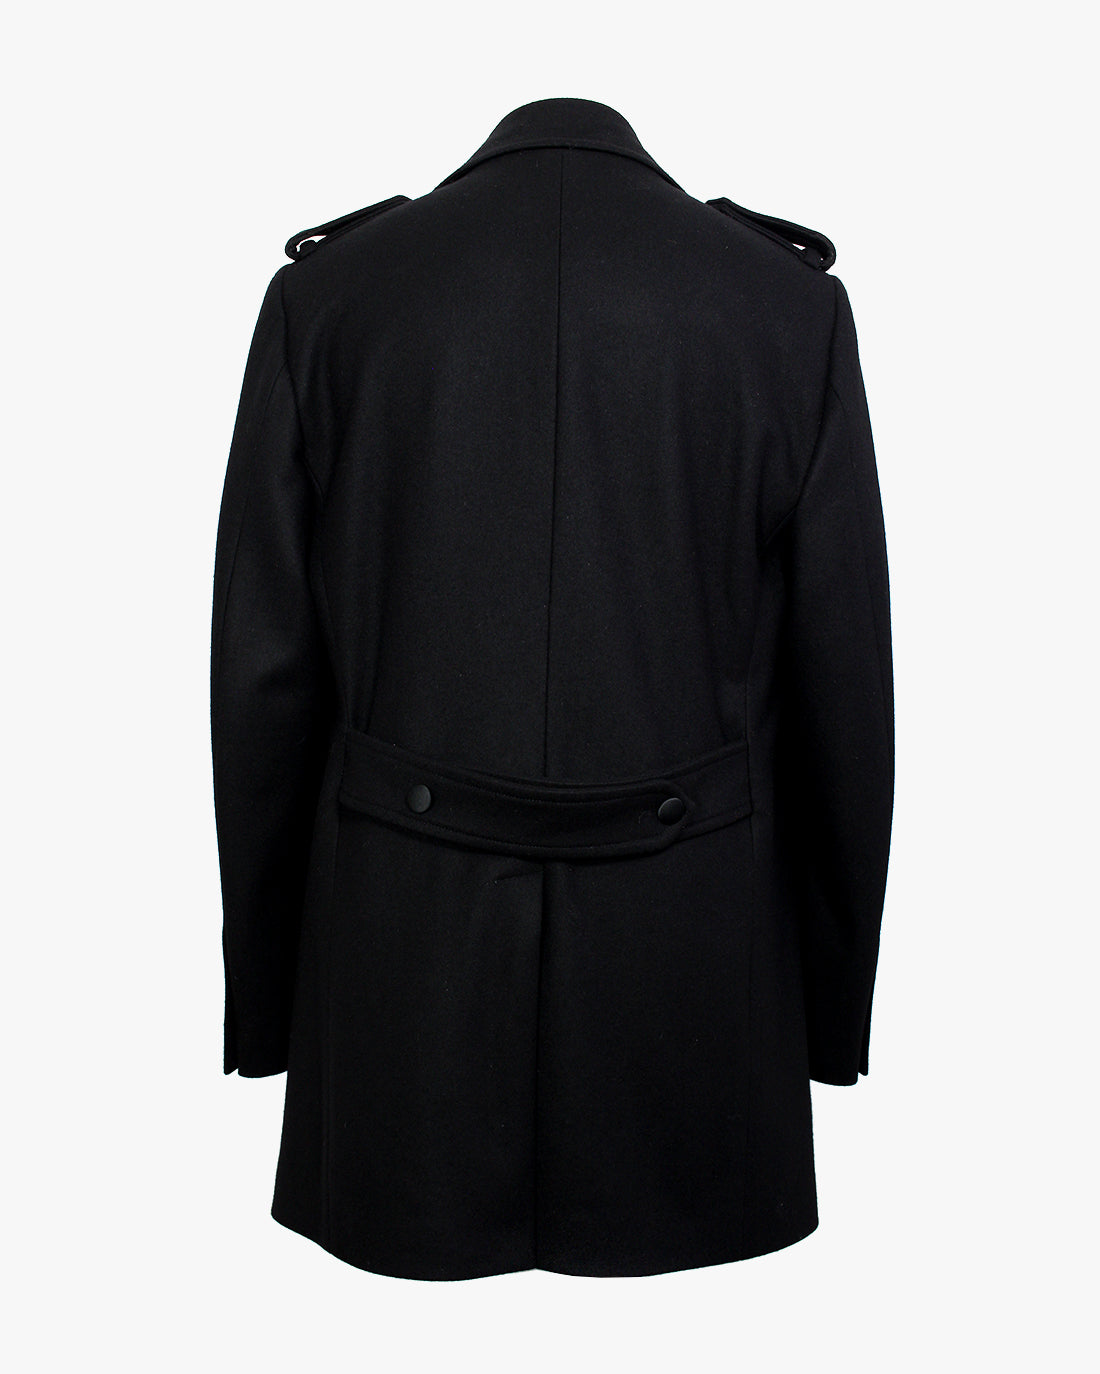 Black Melton Peacoat - Holland Esquire